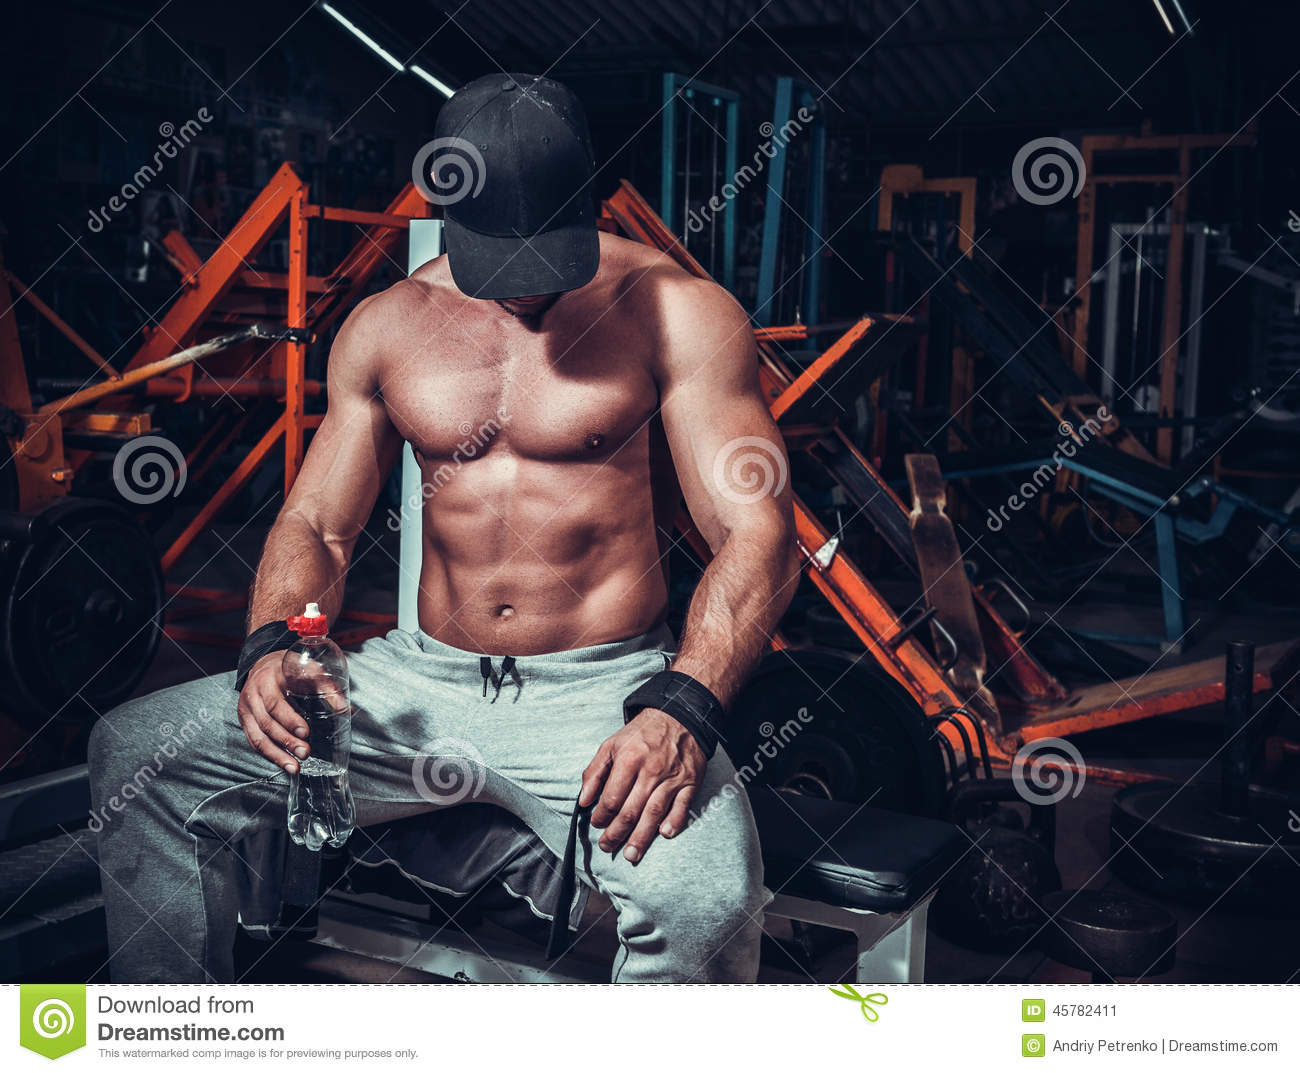 Muscle shaped man tired sitting relaxed